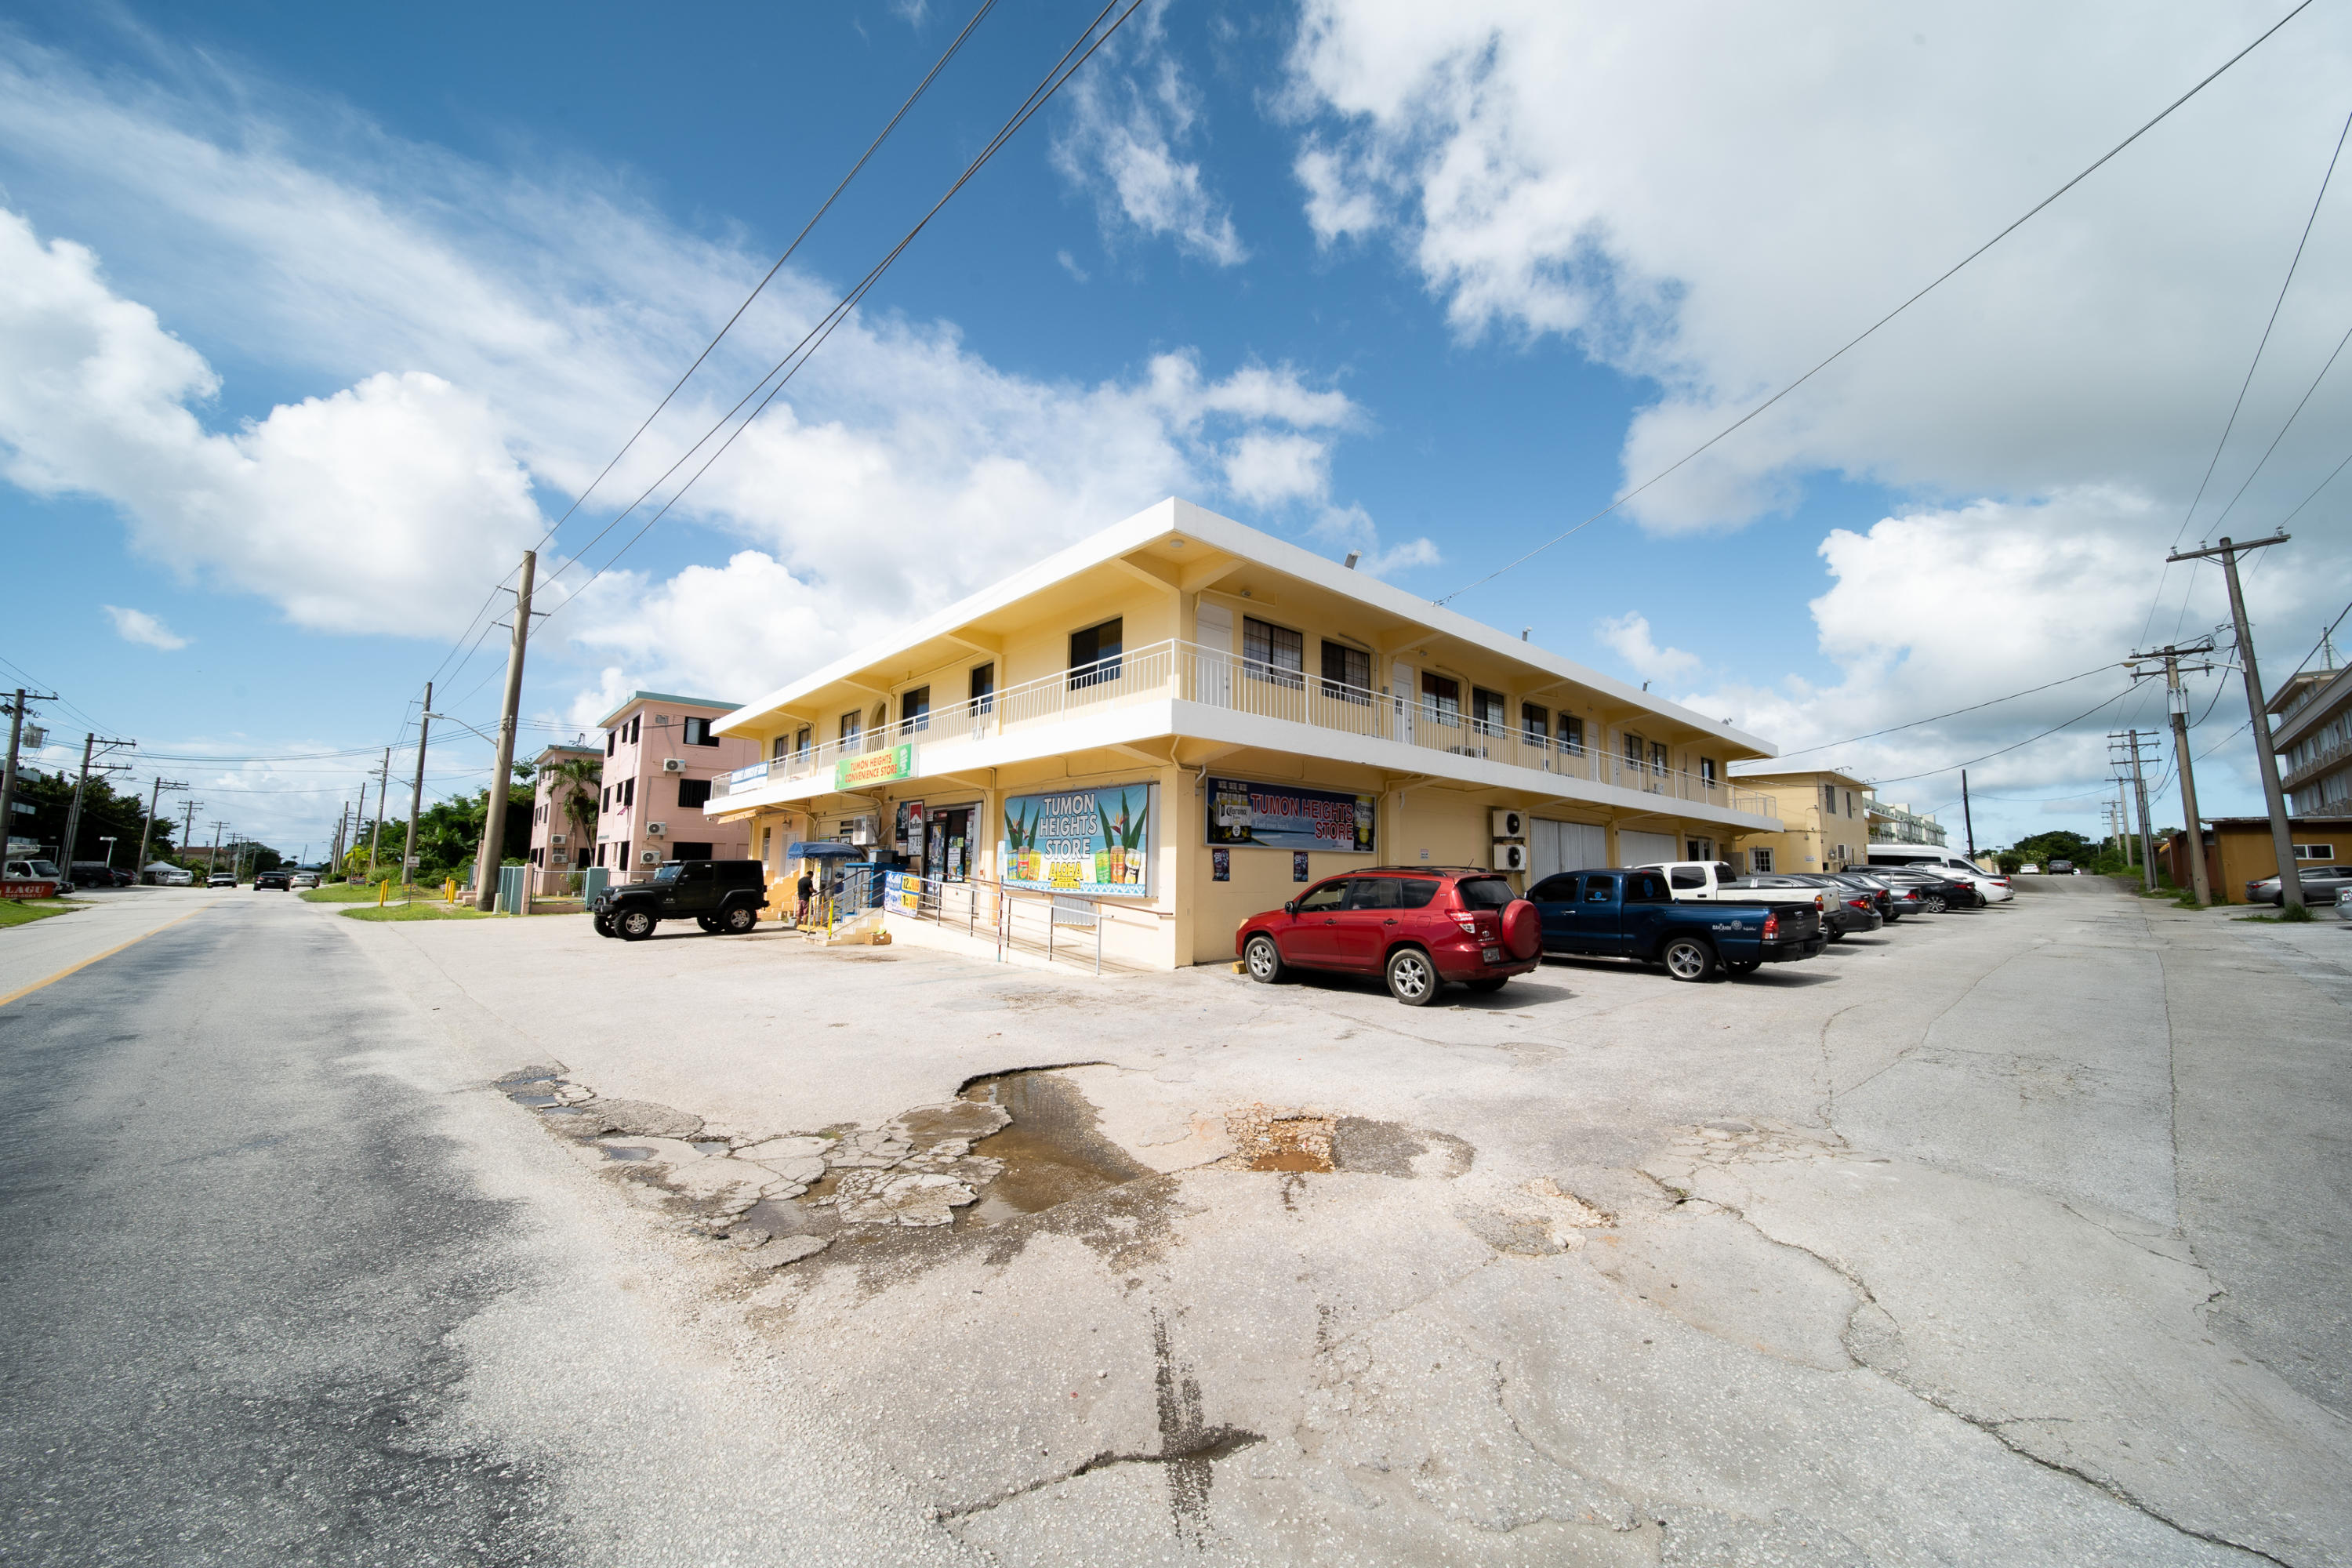 252 Ypao Rd. VARIOUS, Not in List, Tamuning, GU 96913